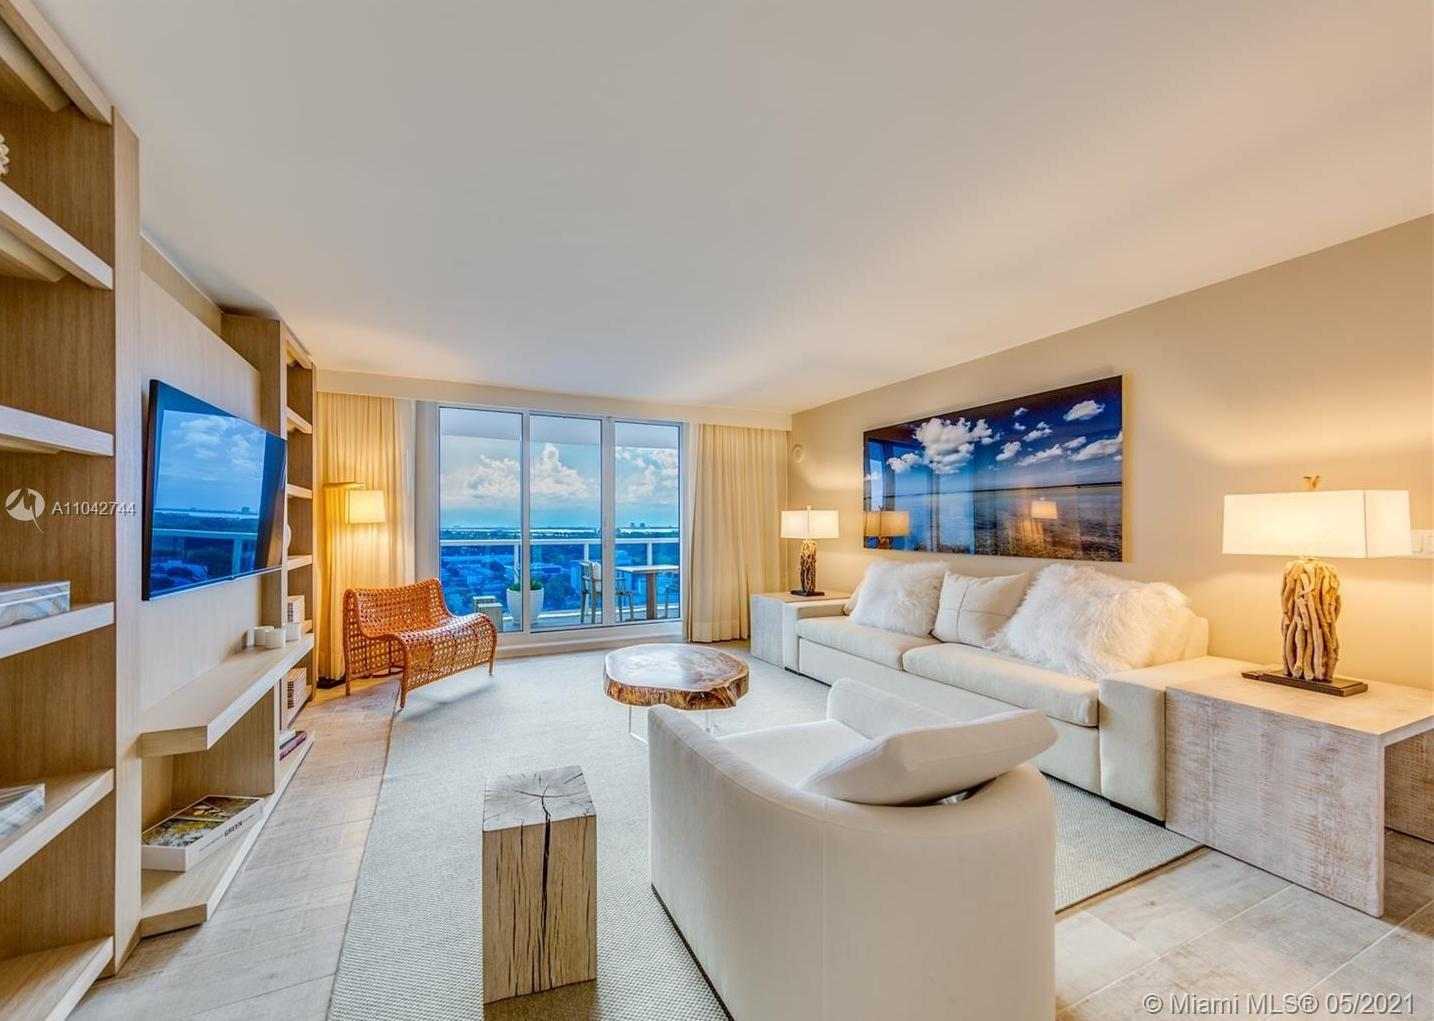 This highly sought after 889 Sq. Ft. condo offers the best of both worlds. Located at the coveted 1 Hotel & Homes South Beach you will enjoy a variety of white glove services at this beach front paradise. After a long day on the beach or relaxing the pool, wind down on your fully furnished private balcony with views of the spectacular Miami skyline...a truly breathtaking experience. Condo comes fully furnished with the custom 1 Hotel furniture package designed by acclaimed decorator Debra Aguiar.  Amenities in the building include a fully staffed residence lobby, valet attendants, personal concierge, and chauffeured Tesla SUV's. Eco-conscious amenities to include 4 pools, 4 restaurants, 3 bars, 14,000 Sq. Ft. gym, Bamford Spa, hair salon, Soul Cycle and much more.